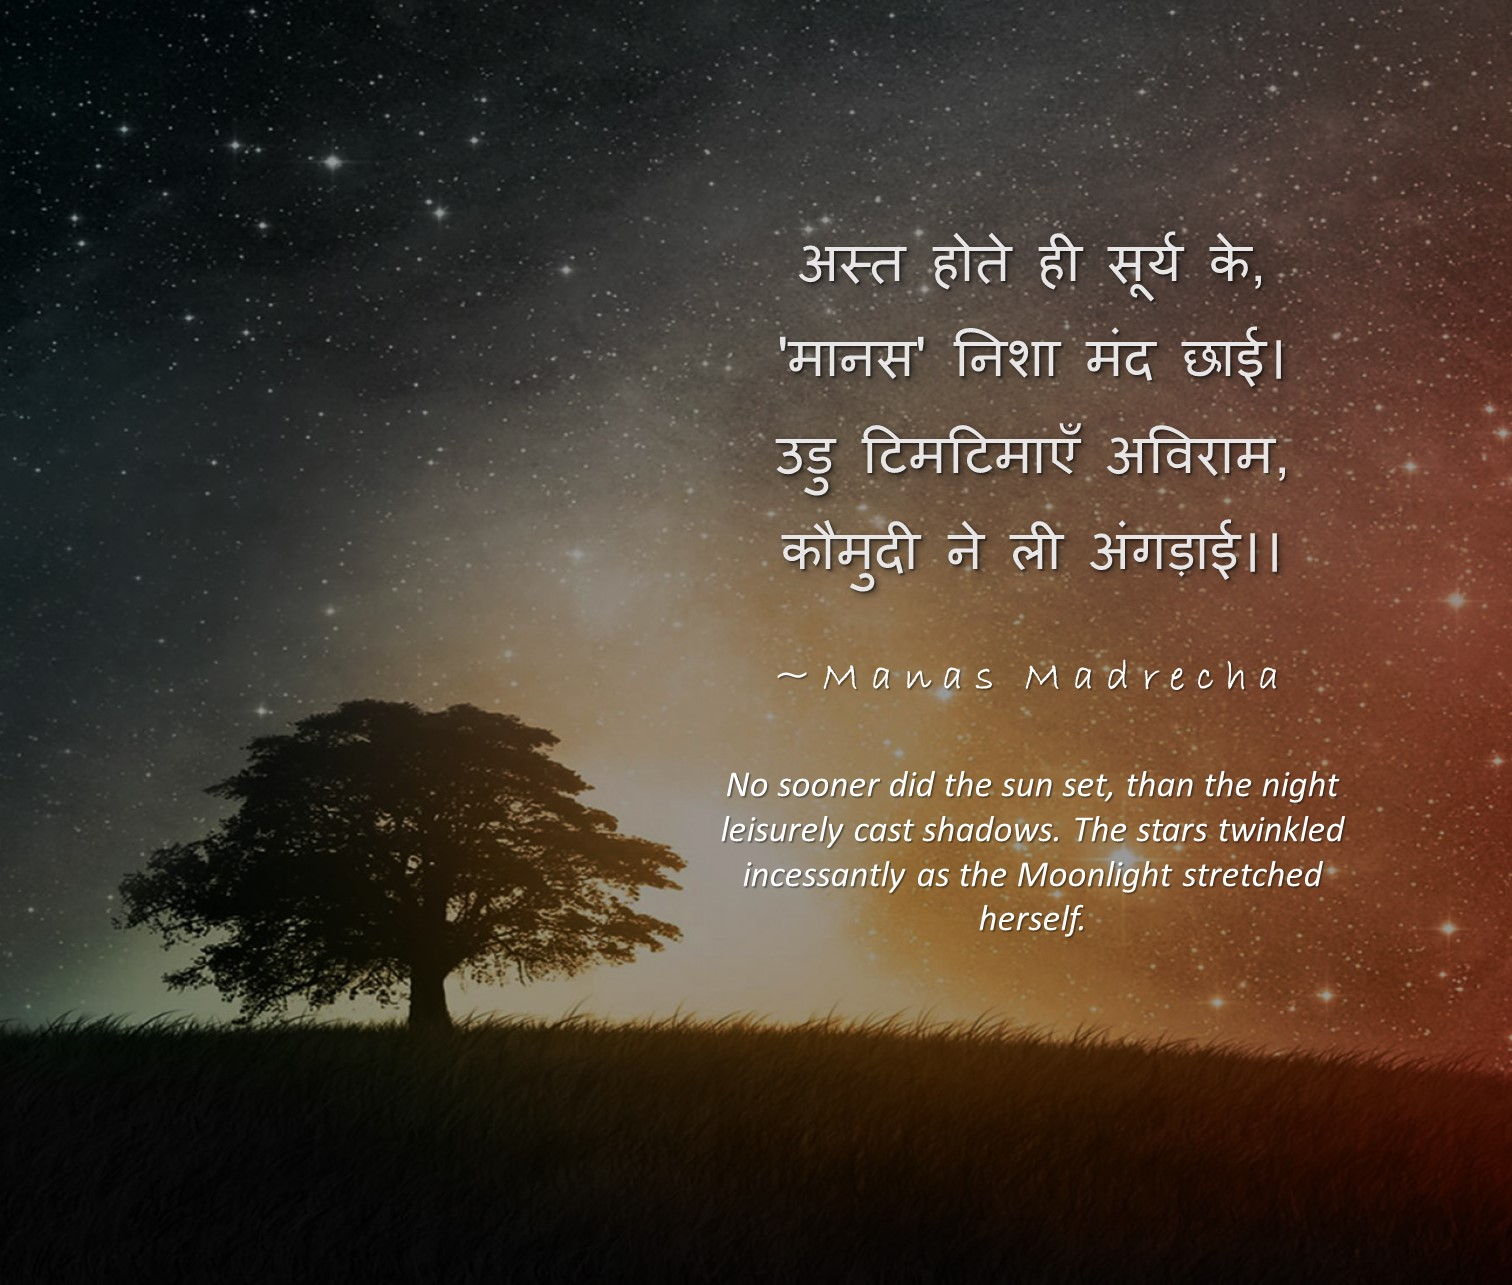 Sun And Moon Quotes Loneliness  Hindi Poem On Moon  Manas Madrecha